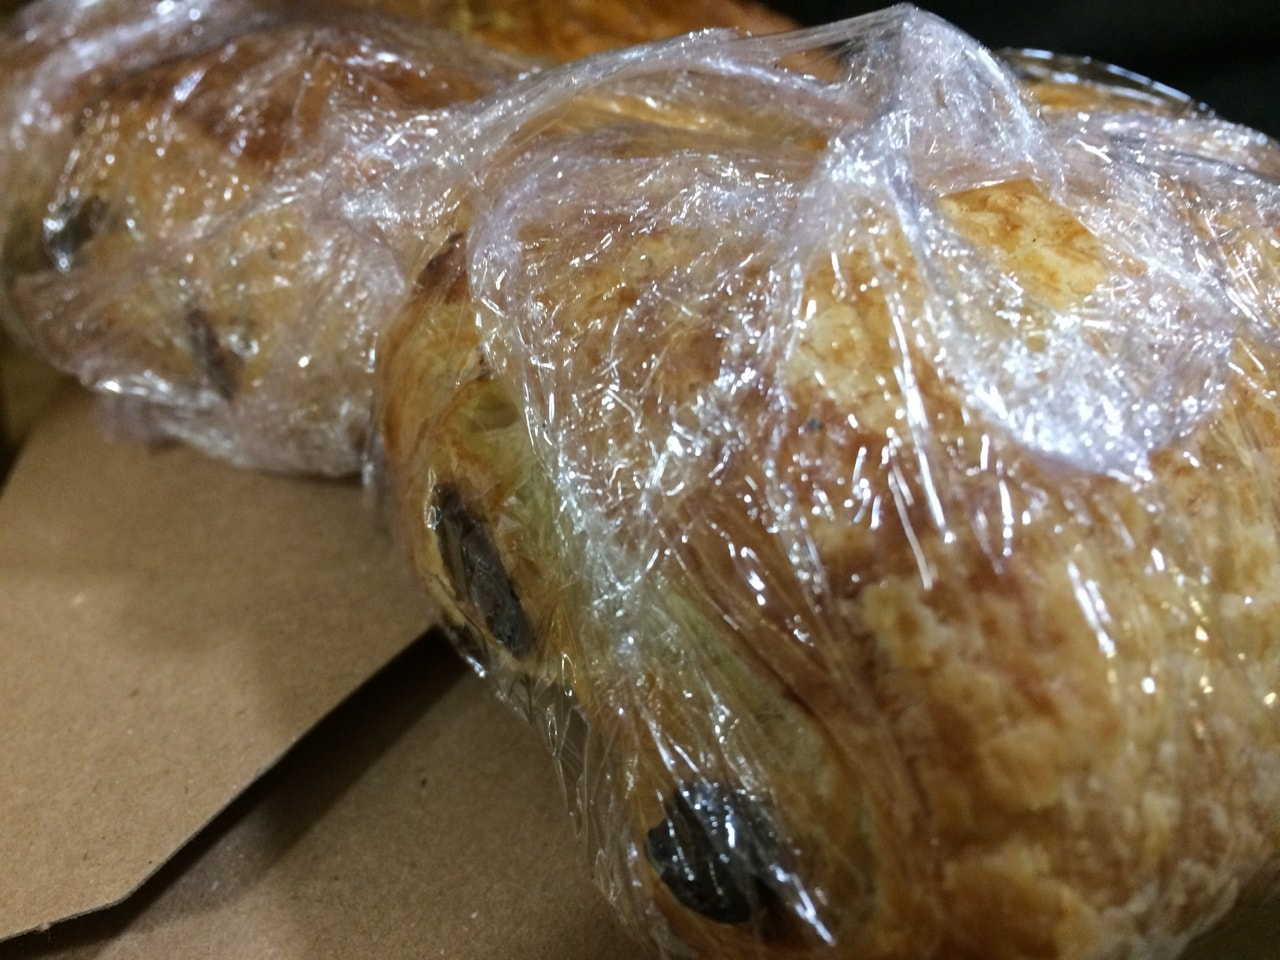 Fresh pastry from Caffe Nero 12/9